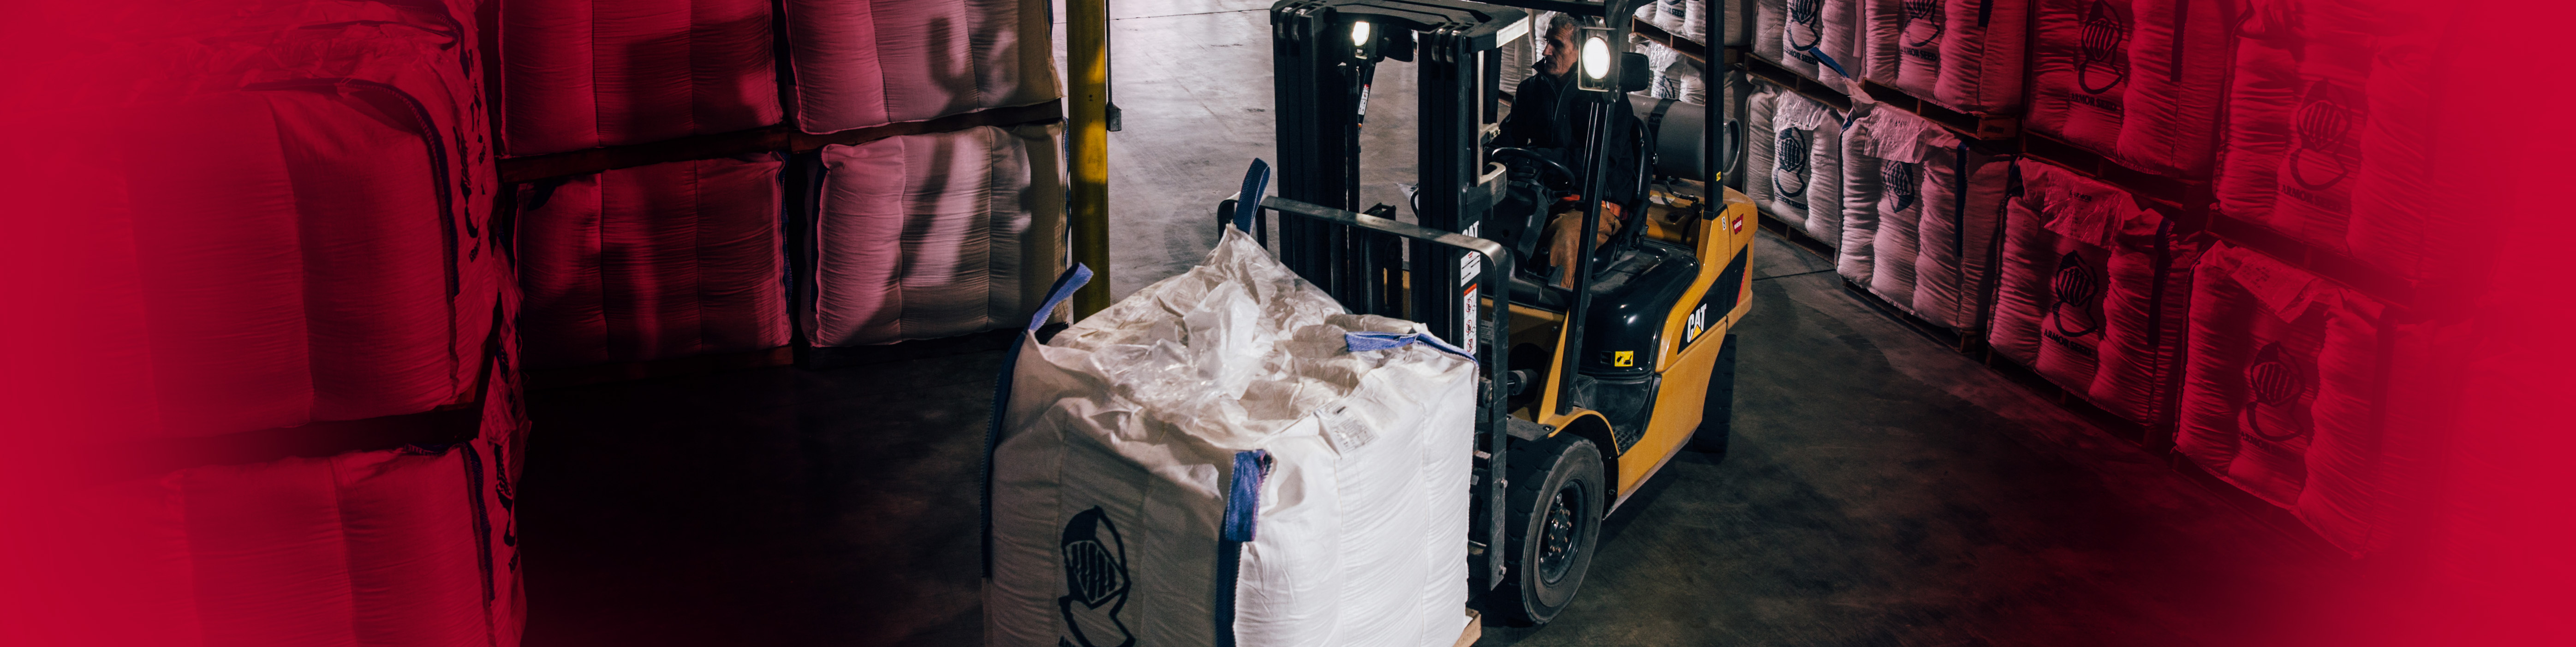 Forklift moving Armor Seed products in a warehouse.